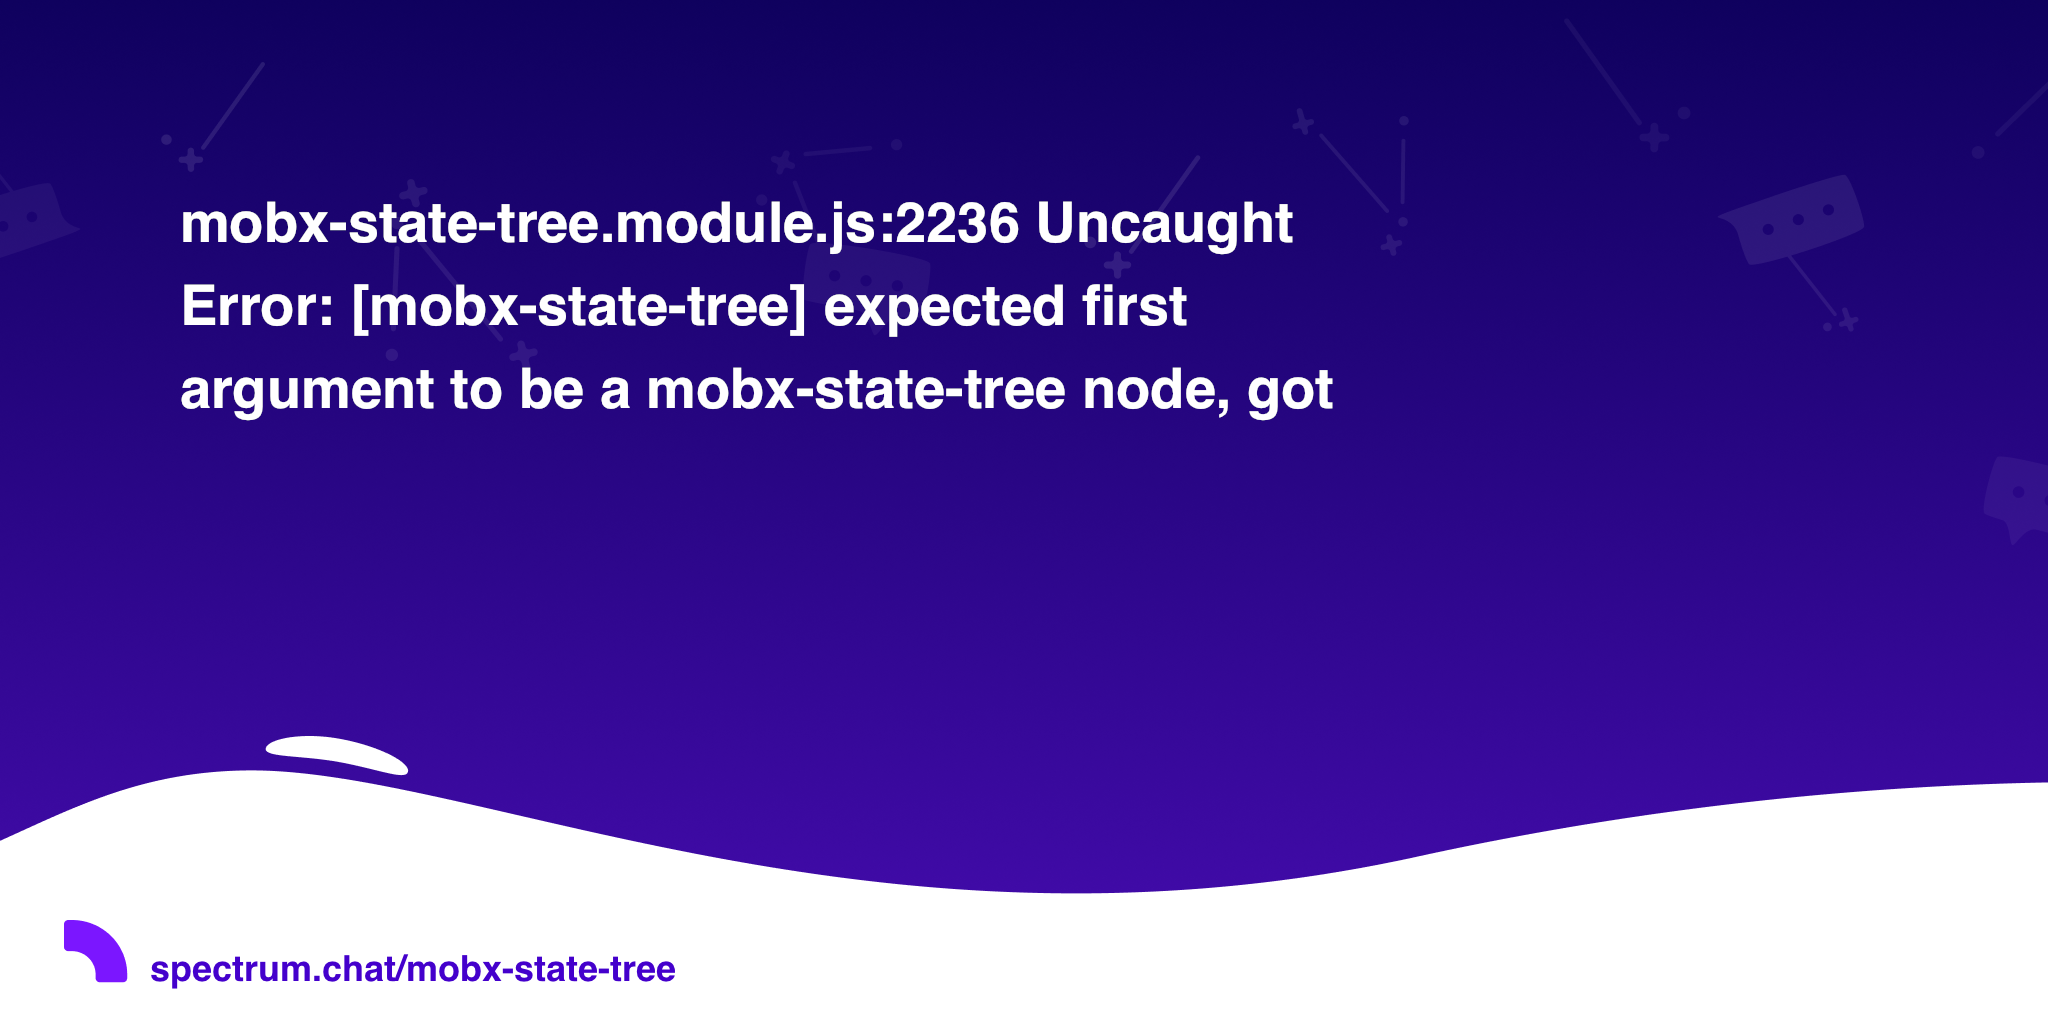 mobx-state-tree module js:2236 Uncaught Error: [mobx-state-tree